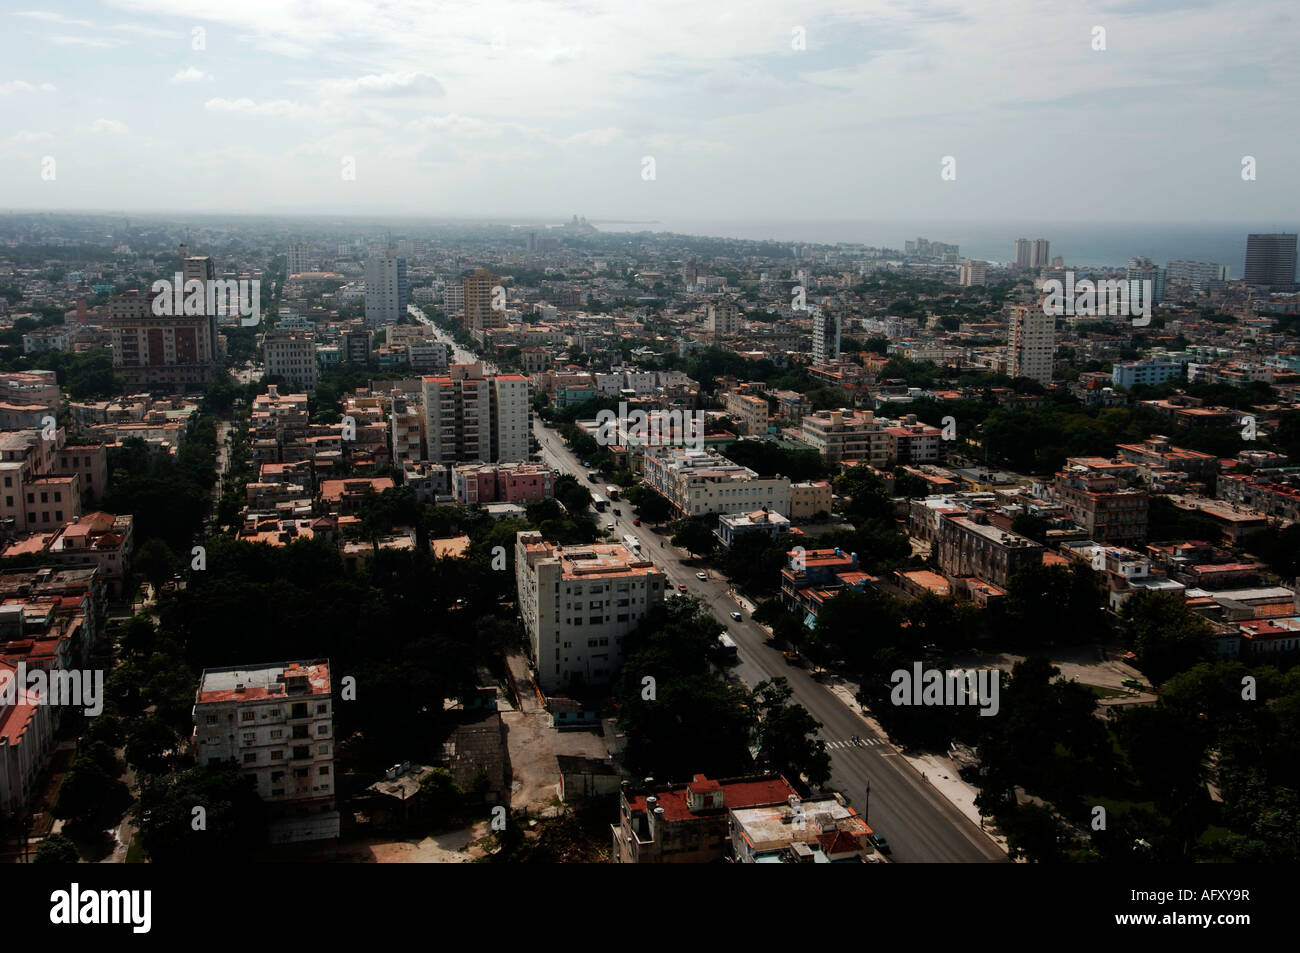 Tryp Habana Libre Cuba Aerial View Havana Vedado Cuba Stock Photos And Aerial View